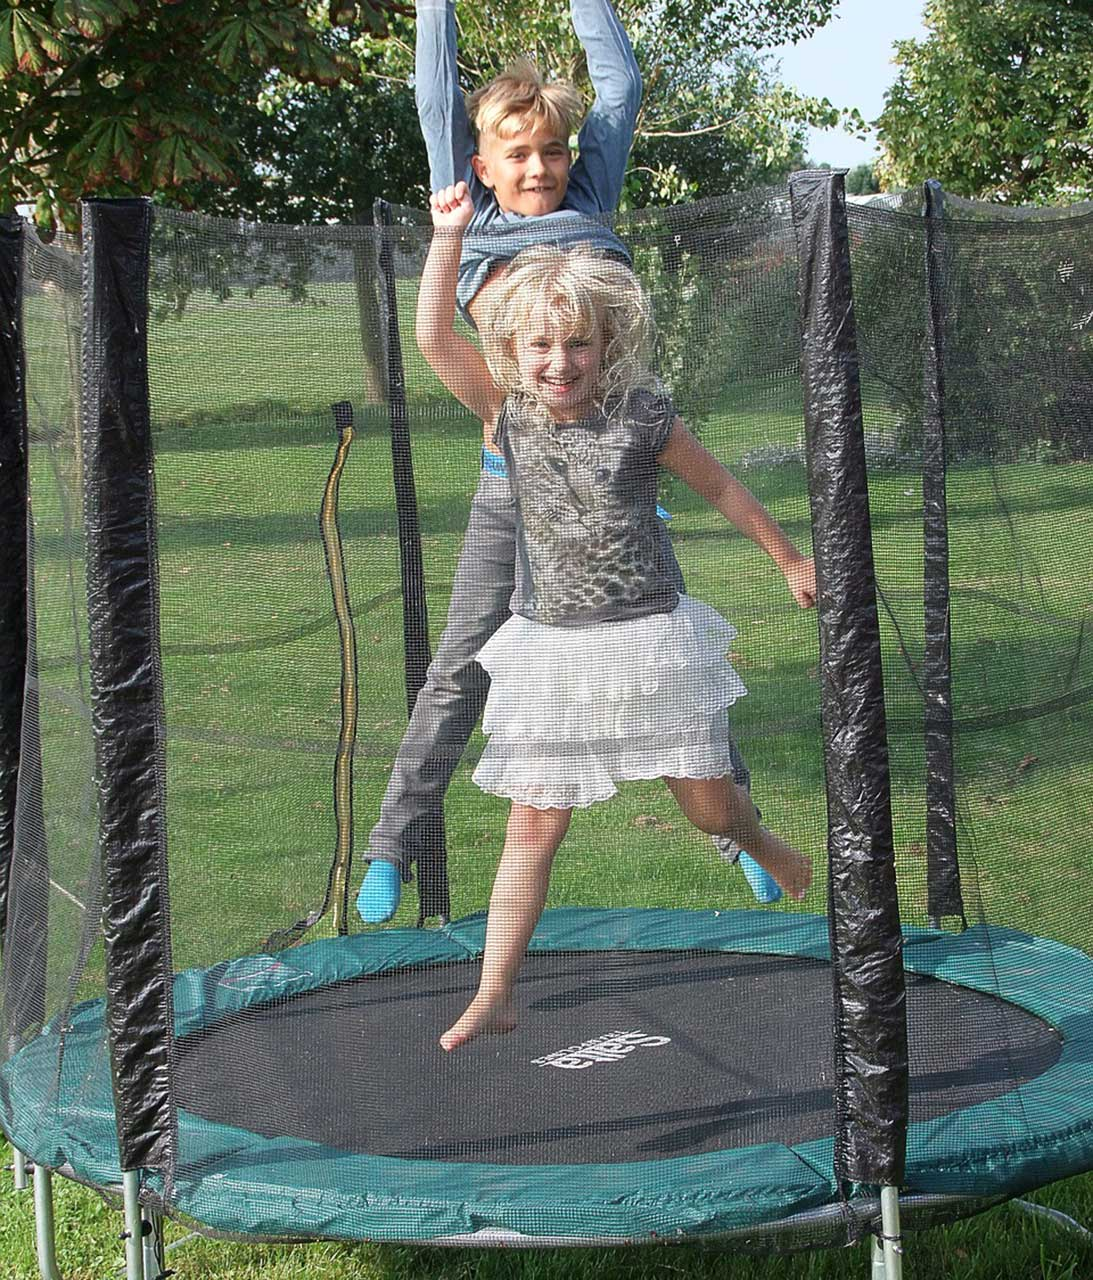 The Best Trampoline Cover Options to Buy on Amazon